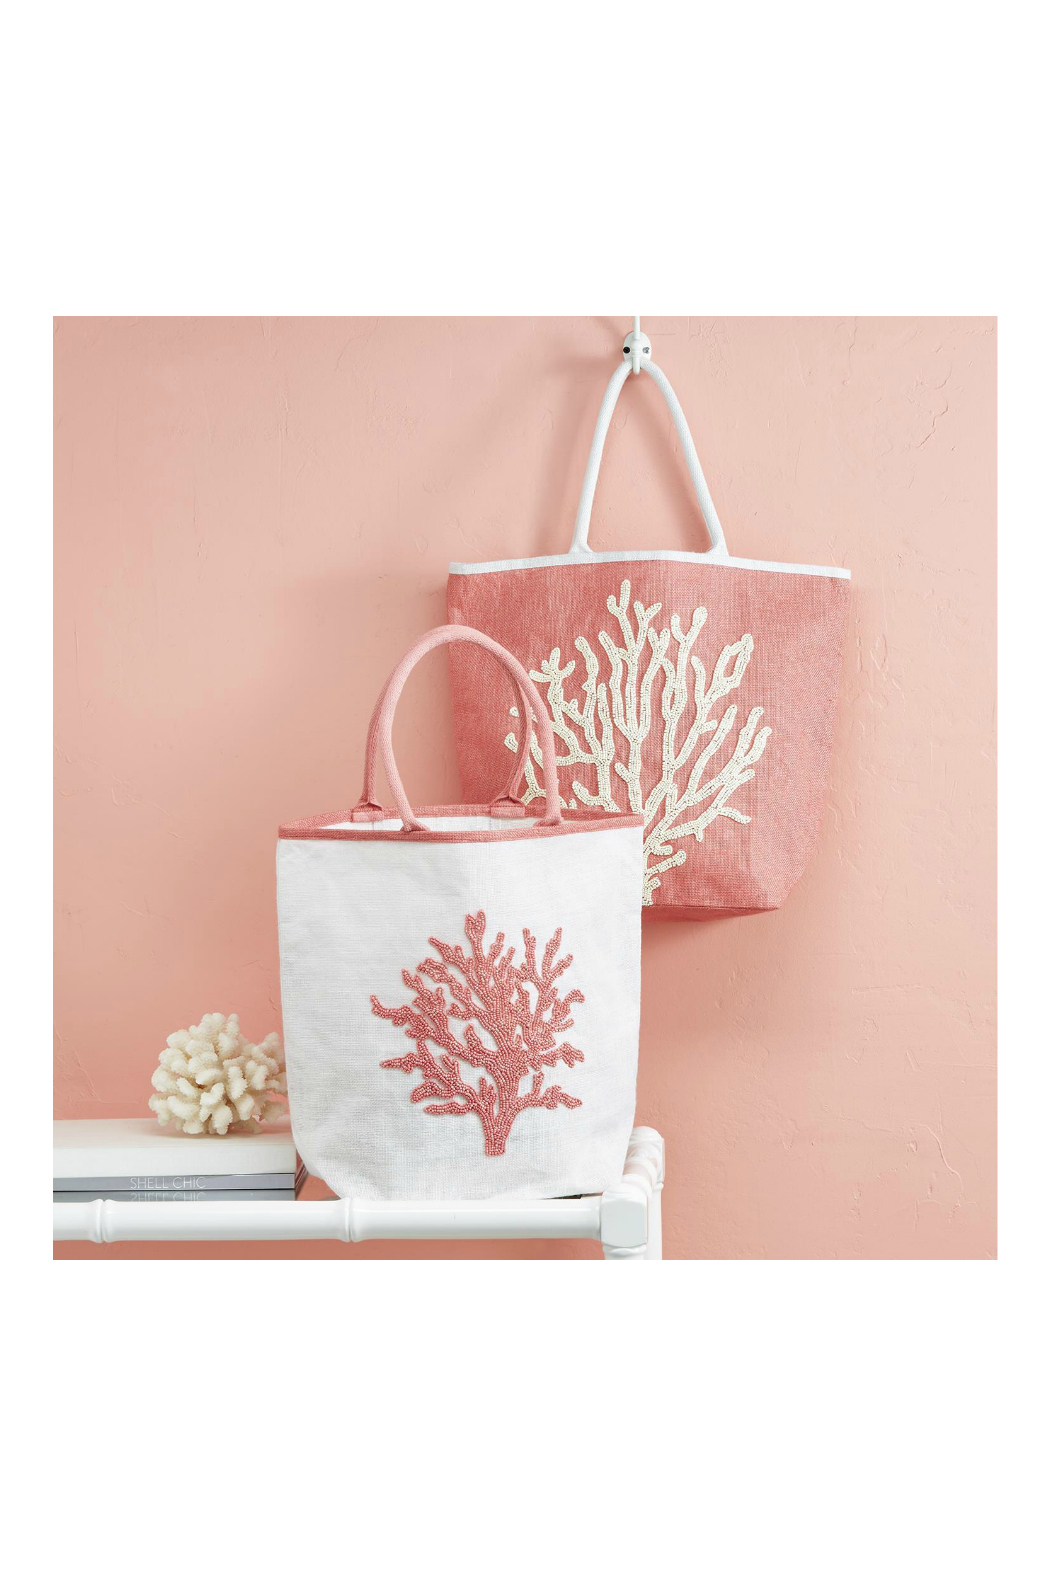 Two's Company CORAL REEF BEADED TOTE BAG - Main Image